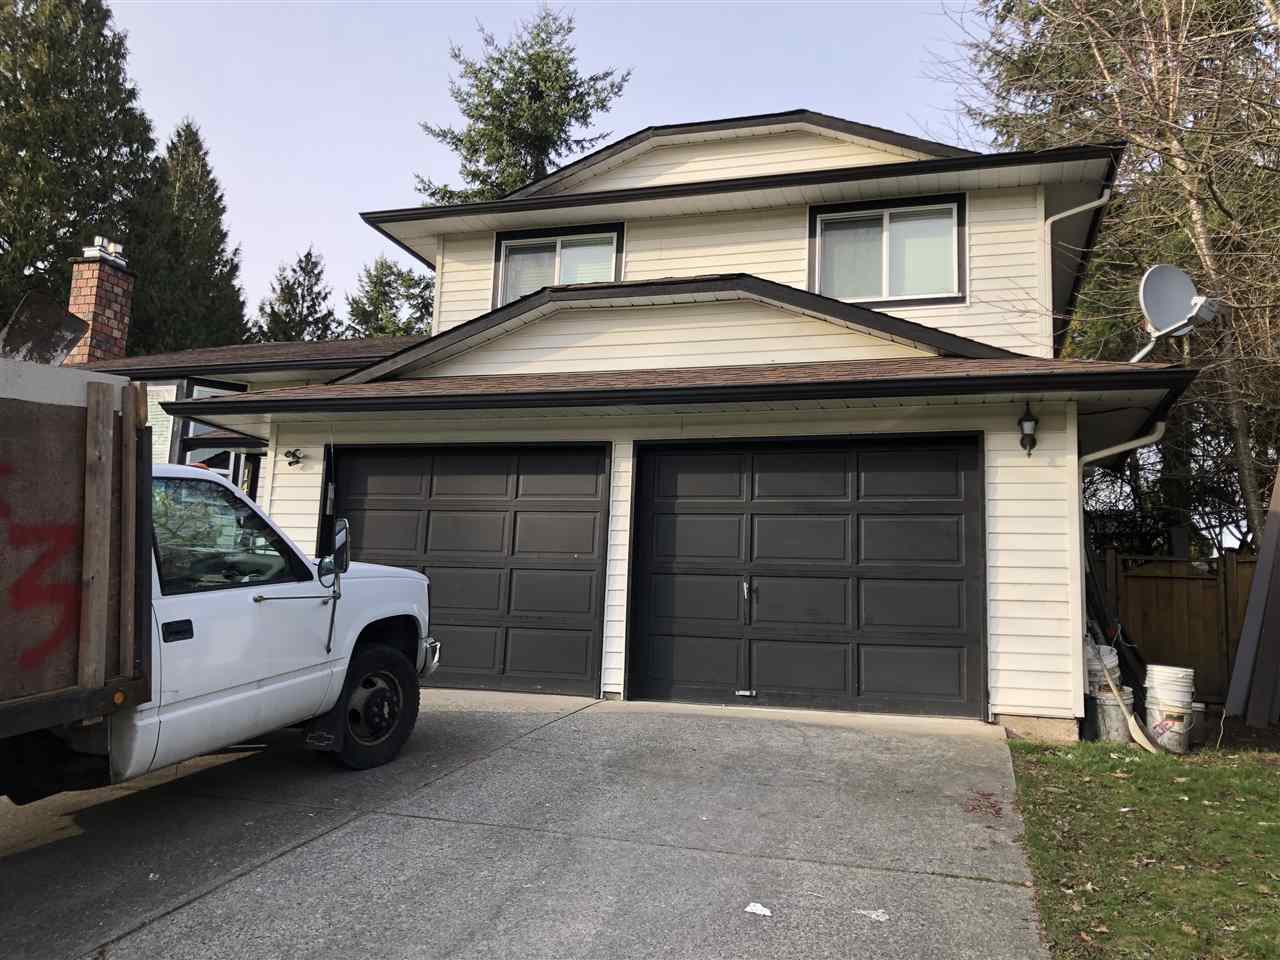 Main Photo: 14707 87A Avenue in Surrey: Bear Creek Green Timbers House for sale : MLS®# R2441030